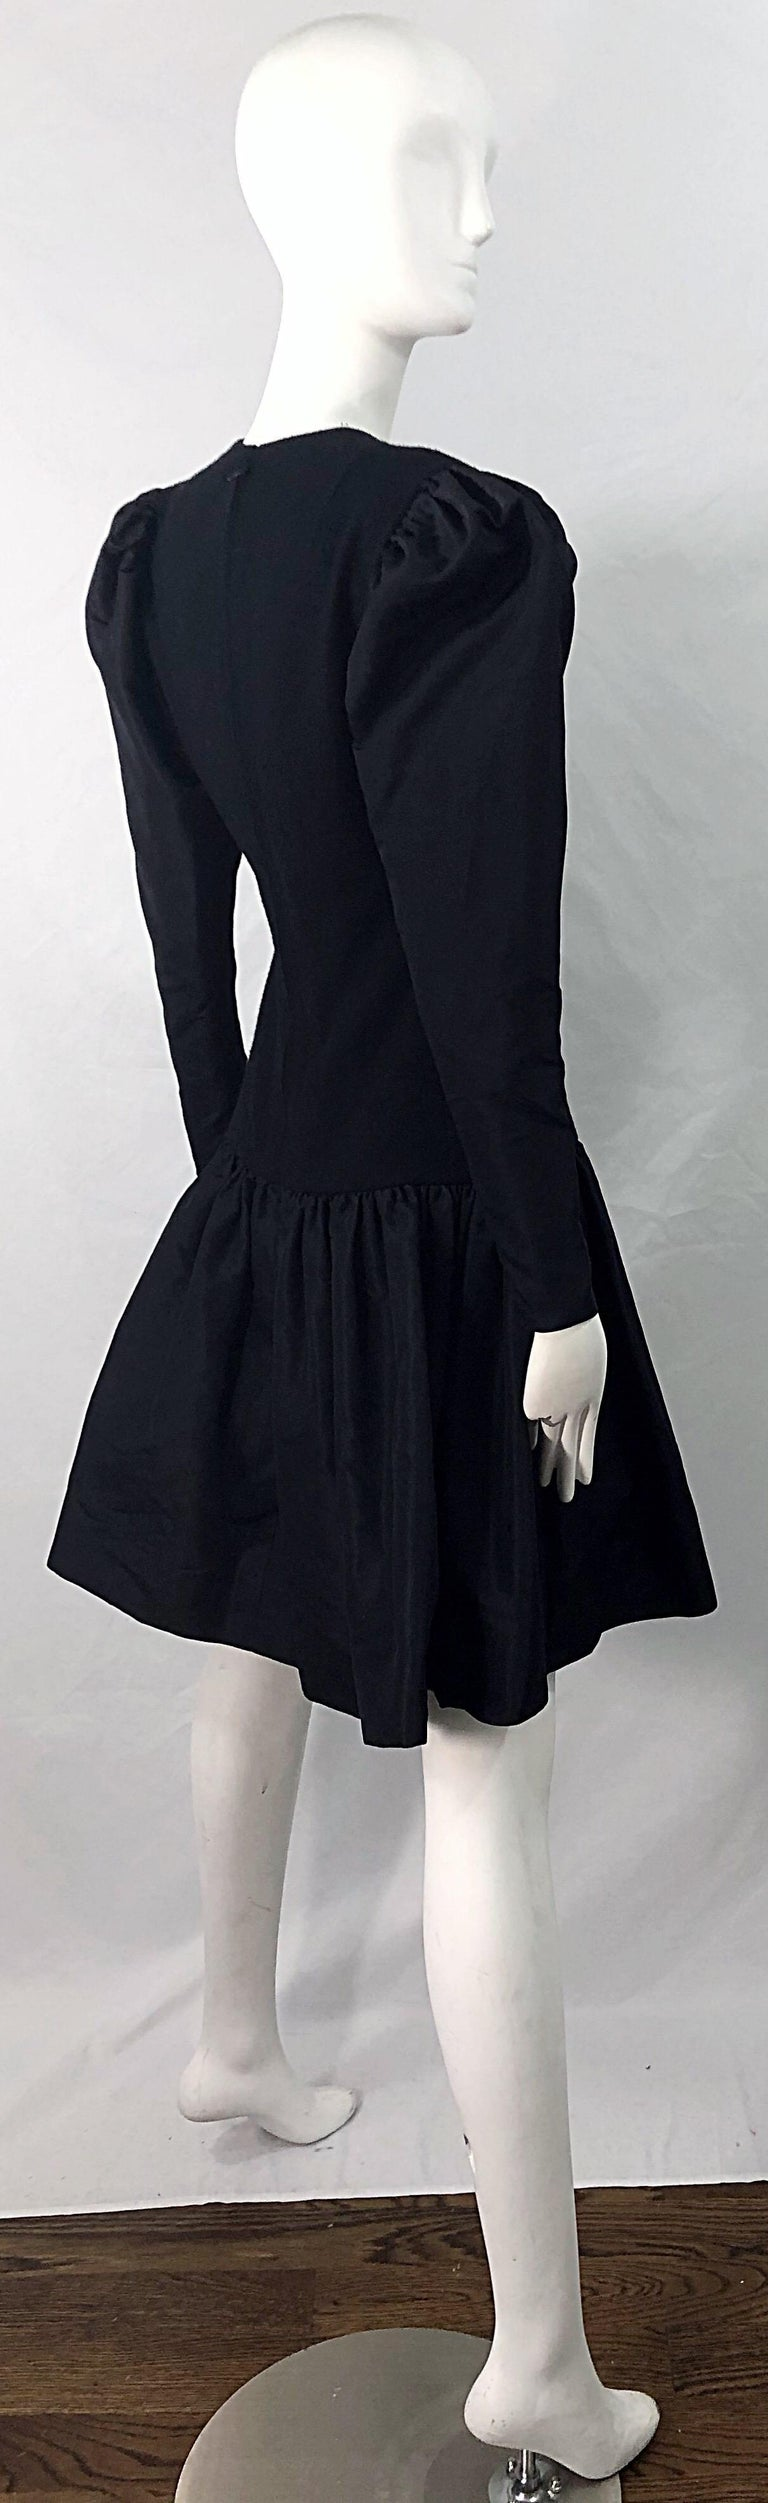 Women's 1980s Pauline Trigere Black Wool Silk Taffeta Avant Garde Vintage 80s Dress For Sale